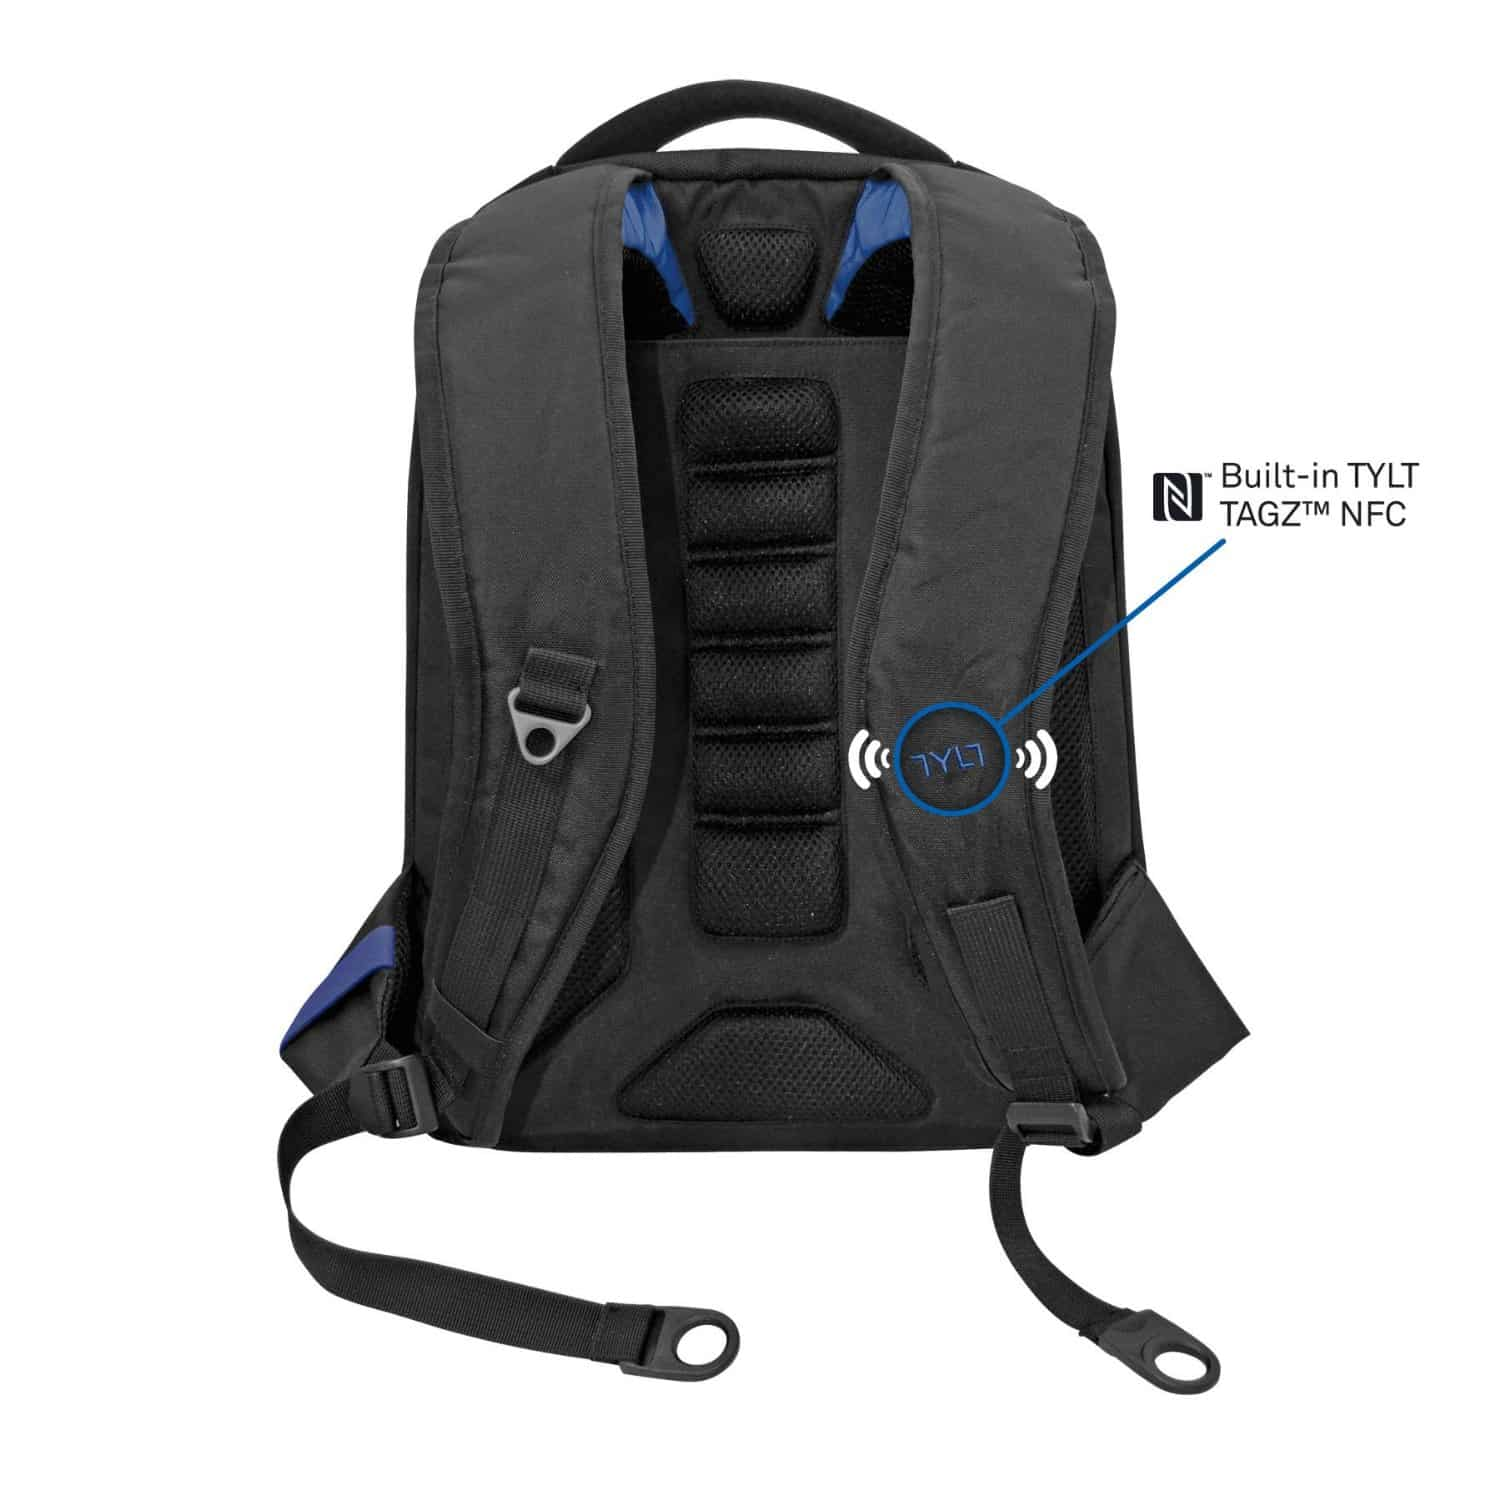 Tylt Energi Backpack + Battery Reviews, Coupons, and Deals